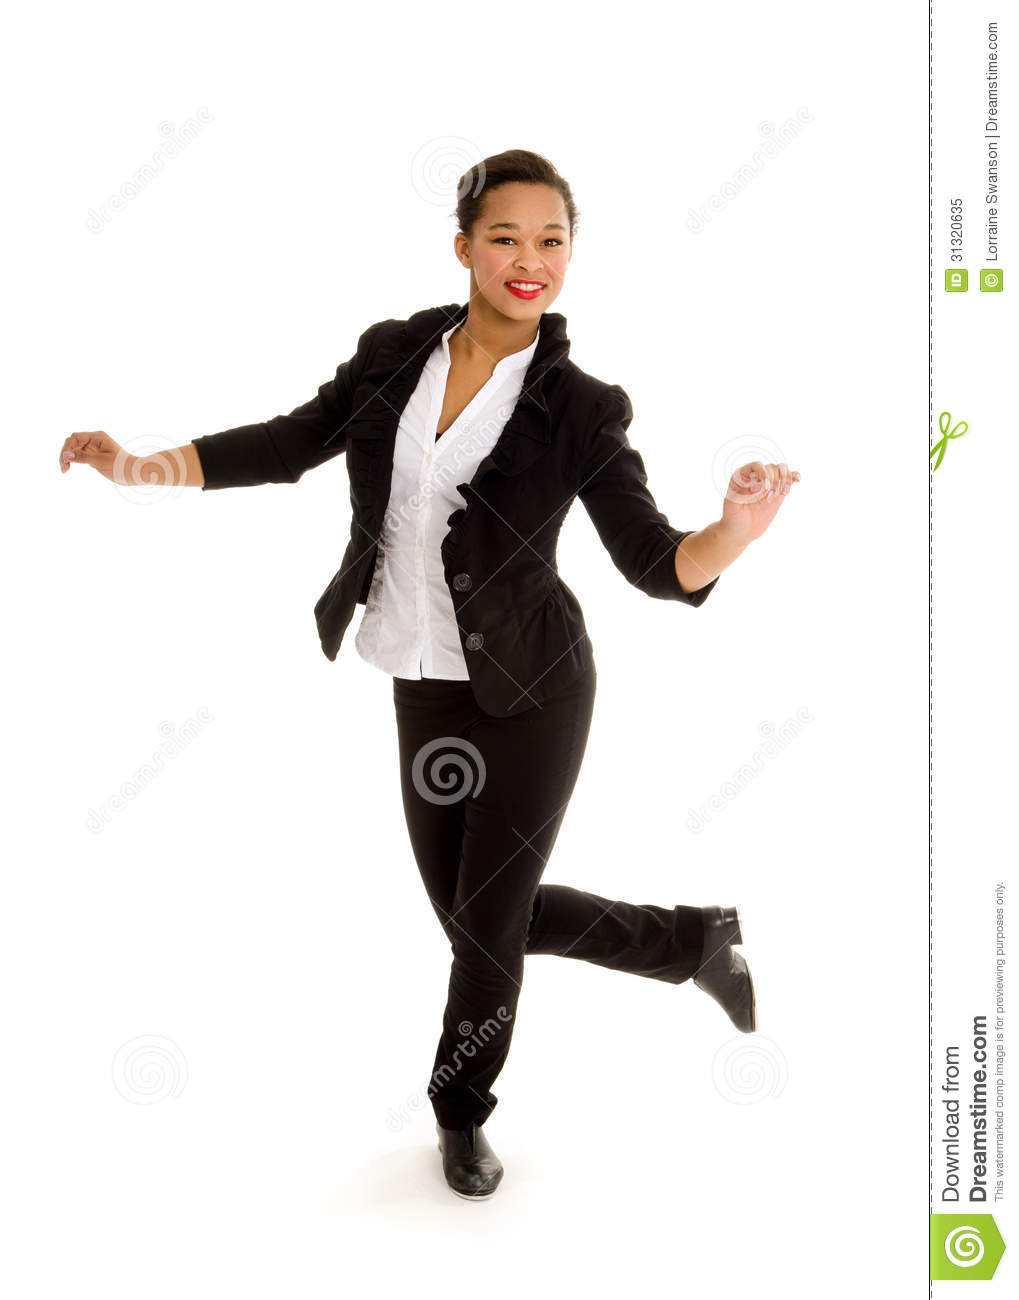 Tap Dancing Girl In Action Royalty Free Stock Photo - Image 31320635